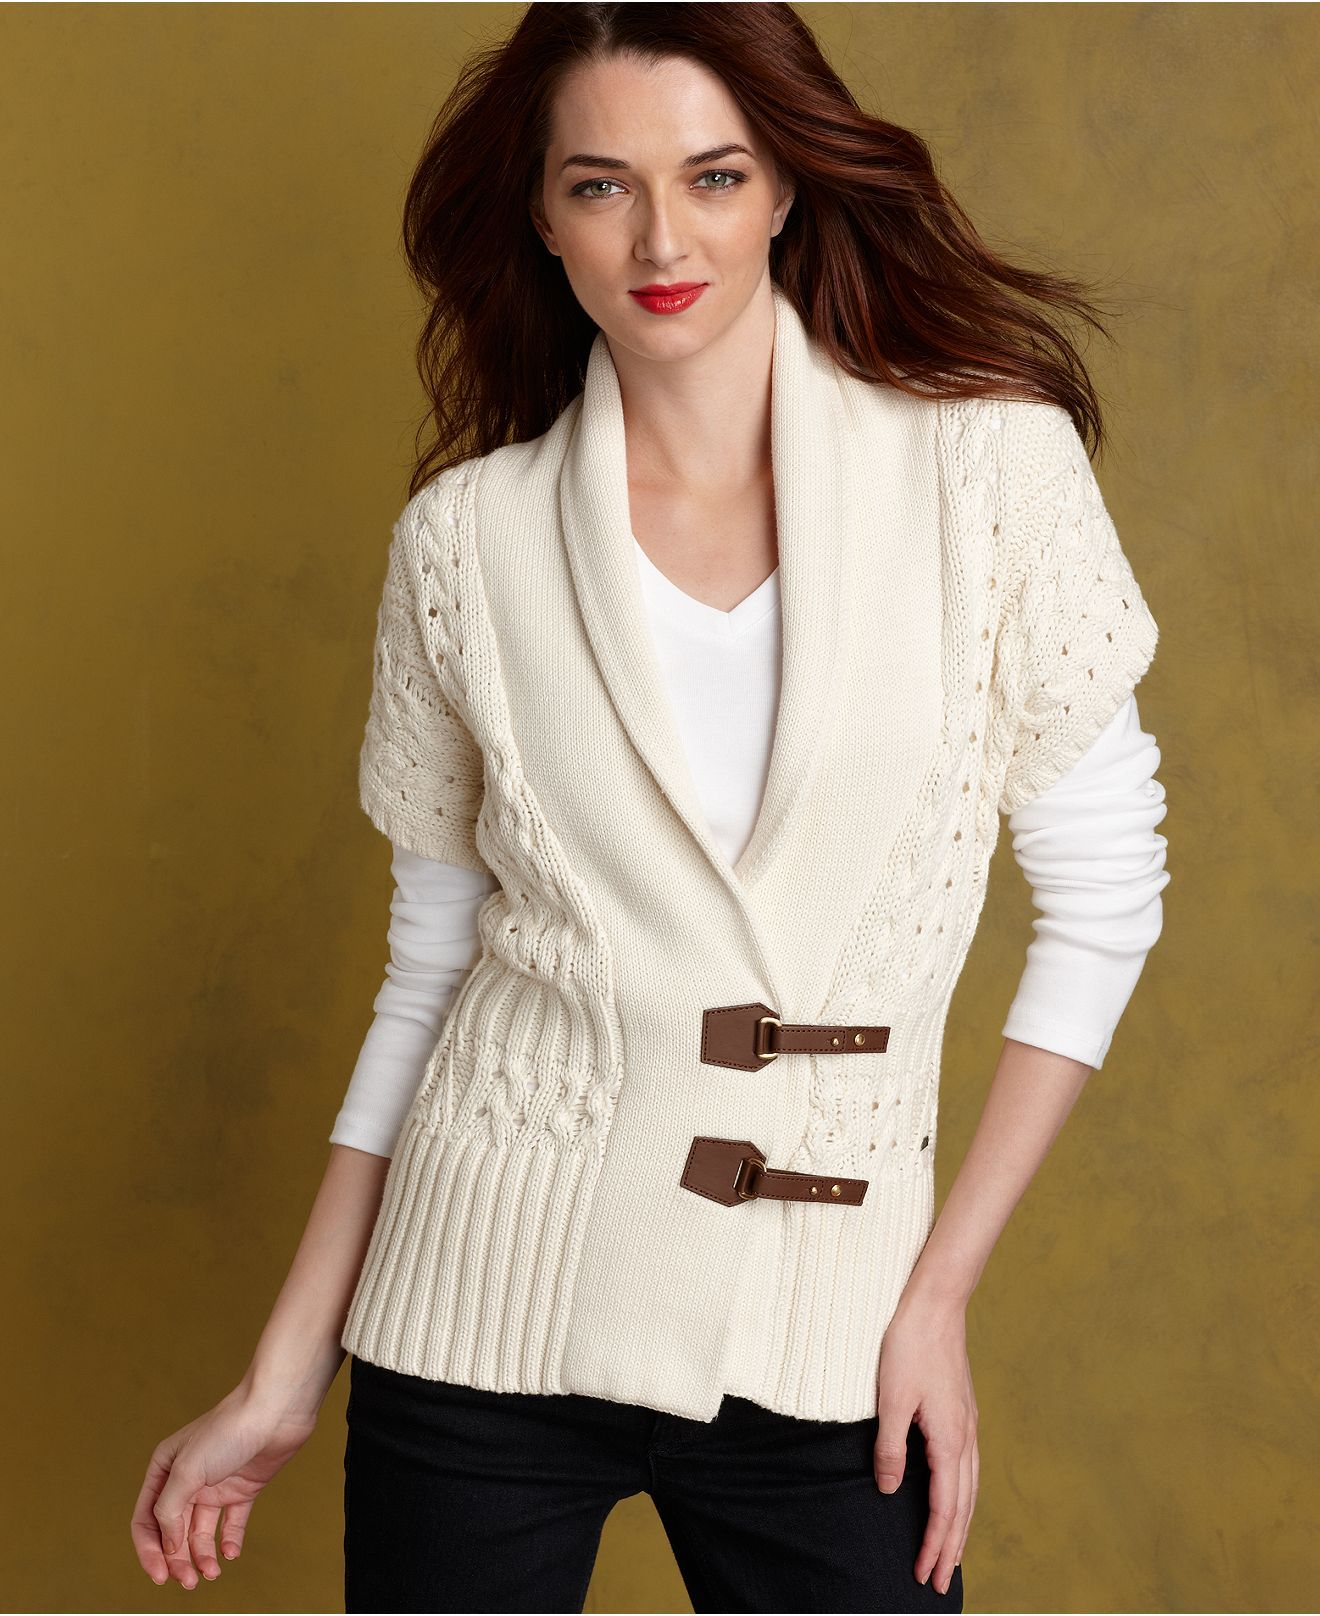 Tommy Hilfiger Sweater, Phoebe Short-Sleeve Cardigan - Womens ...